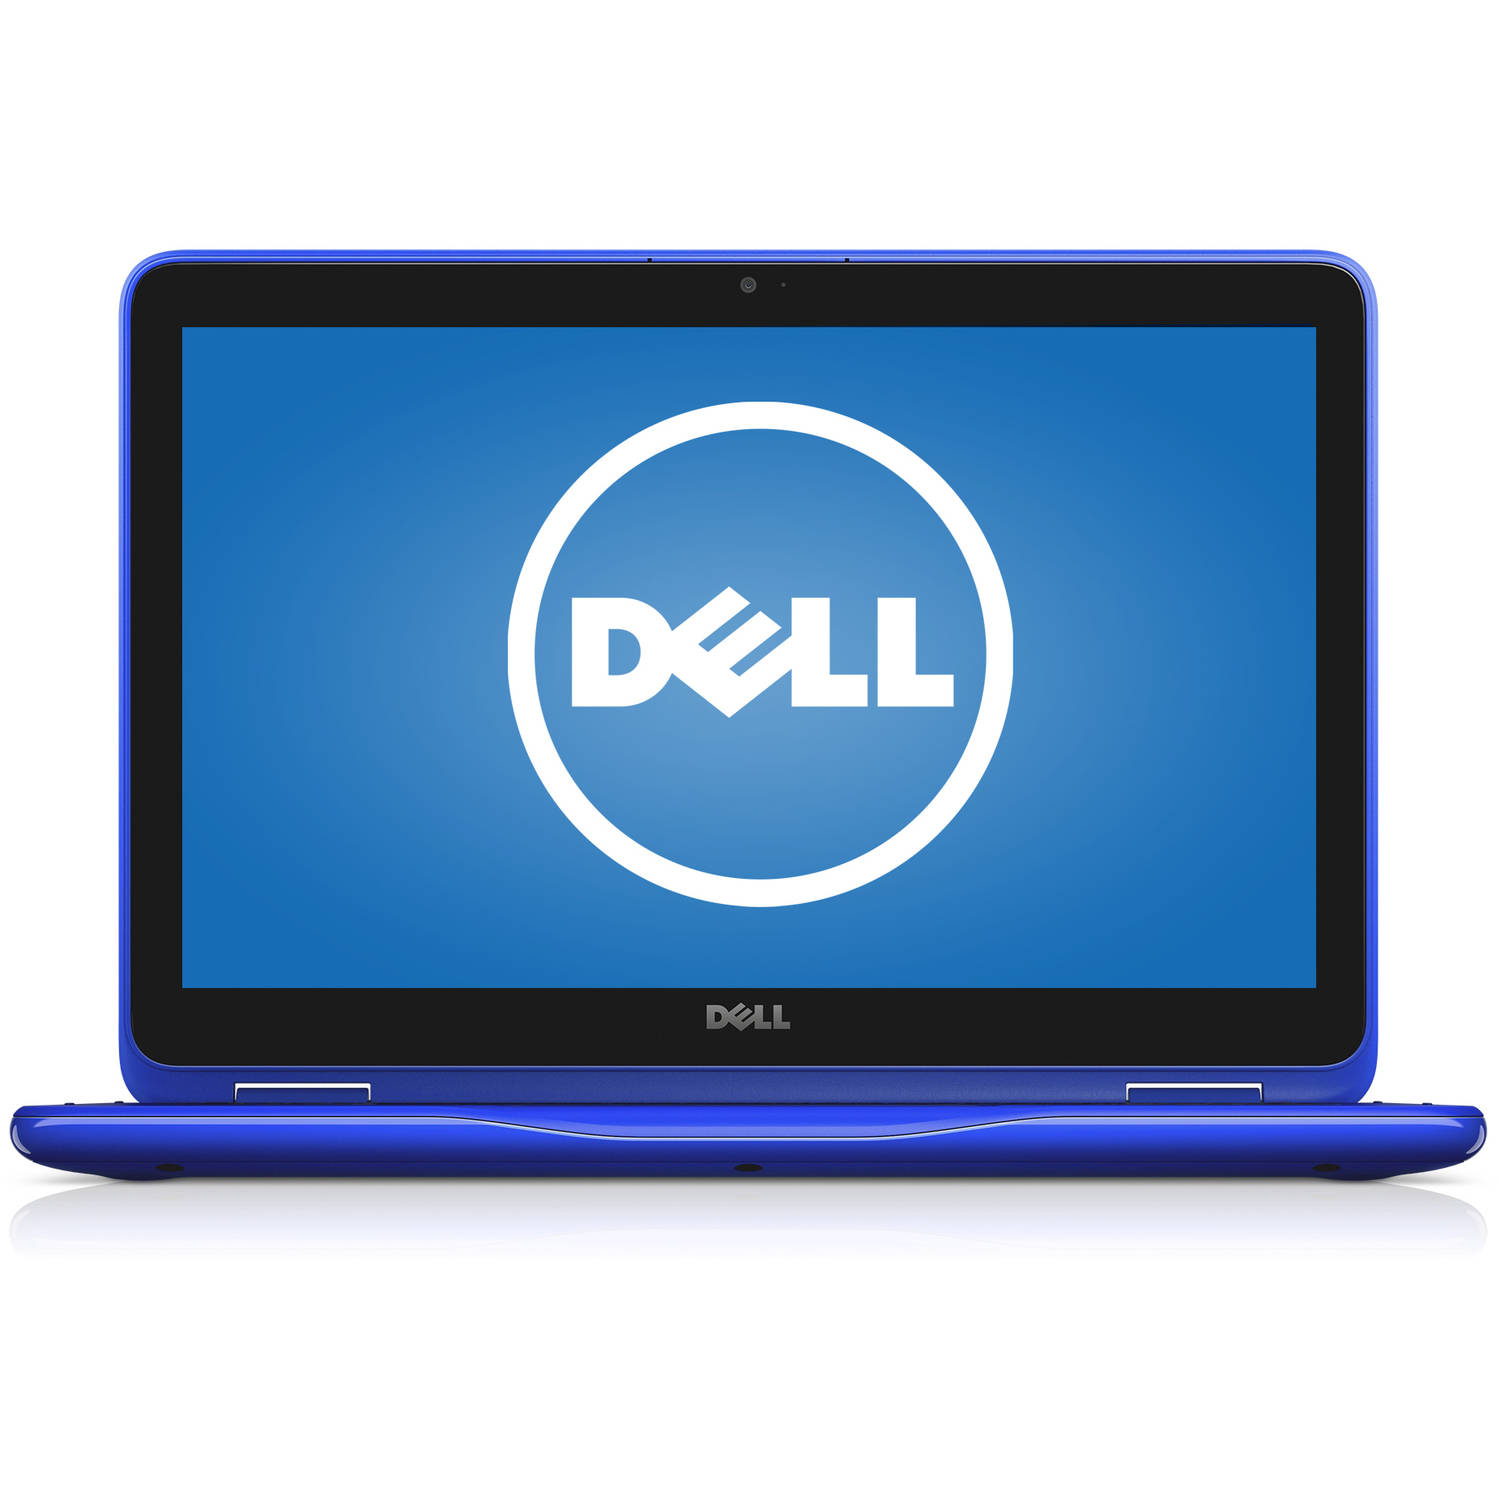 Notebook samsung é bom